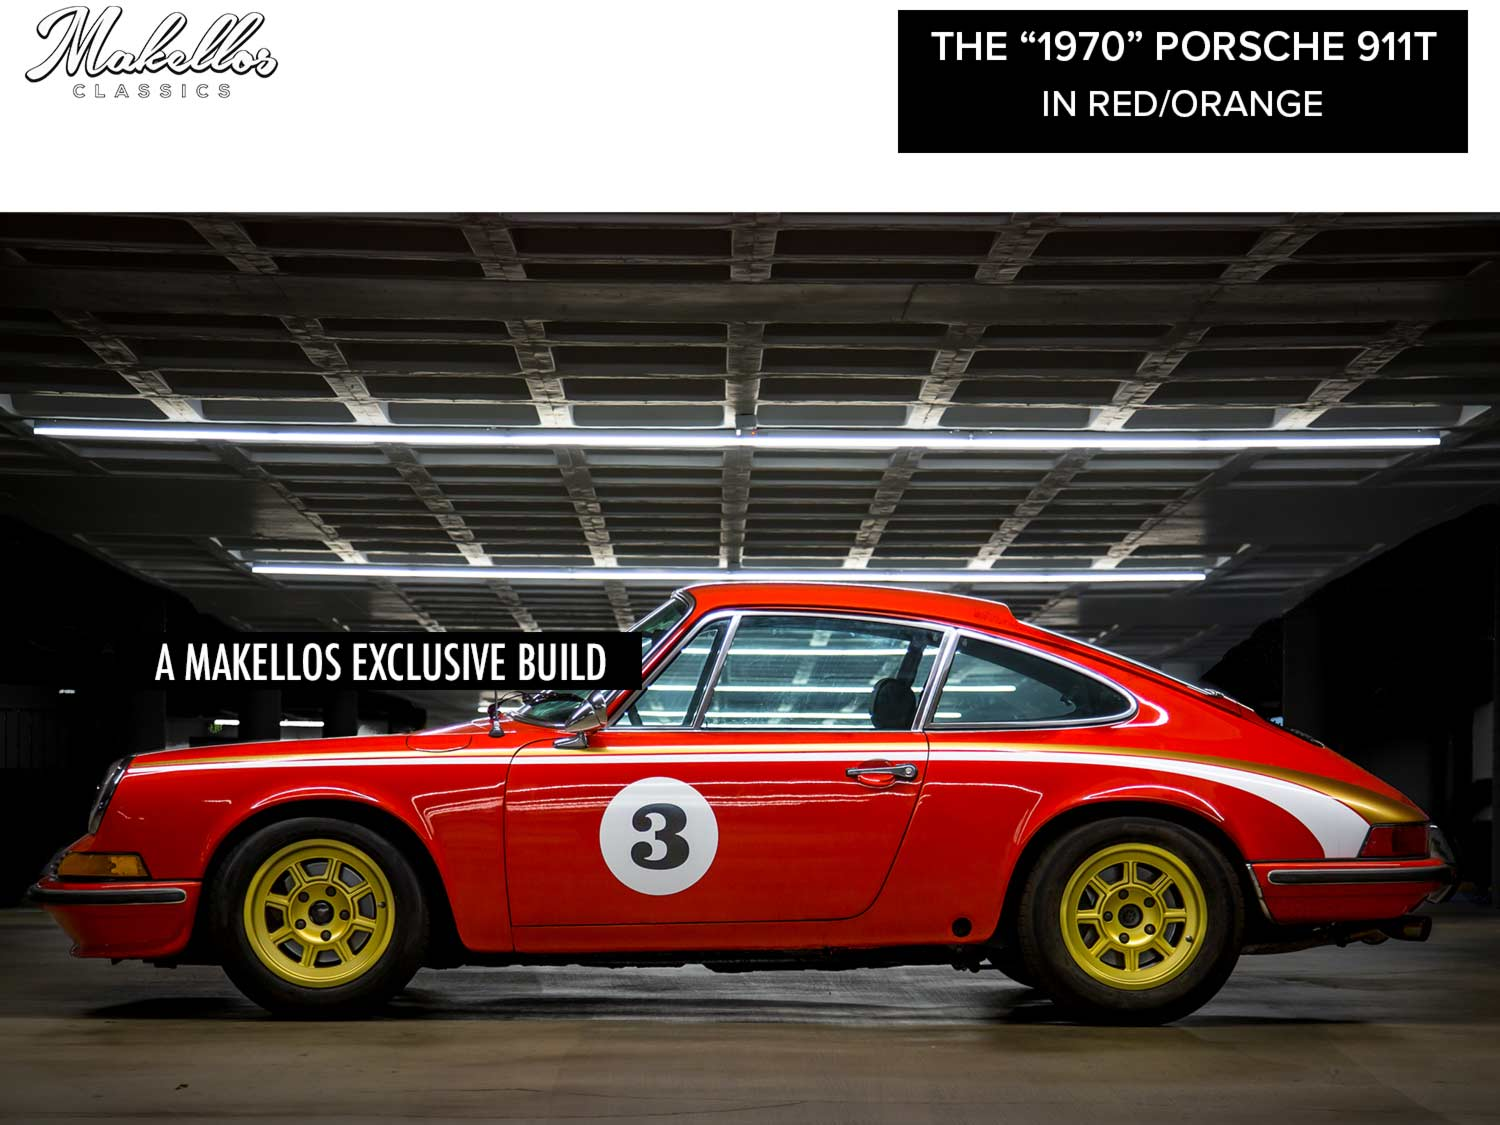 A Makellos Classics custom build and full restoration of the 1970 Porsche 911T in Orange/Red.